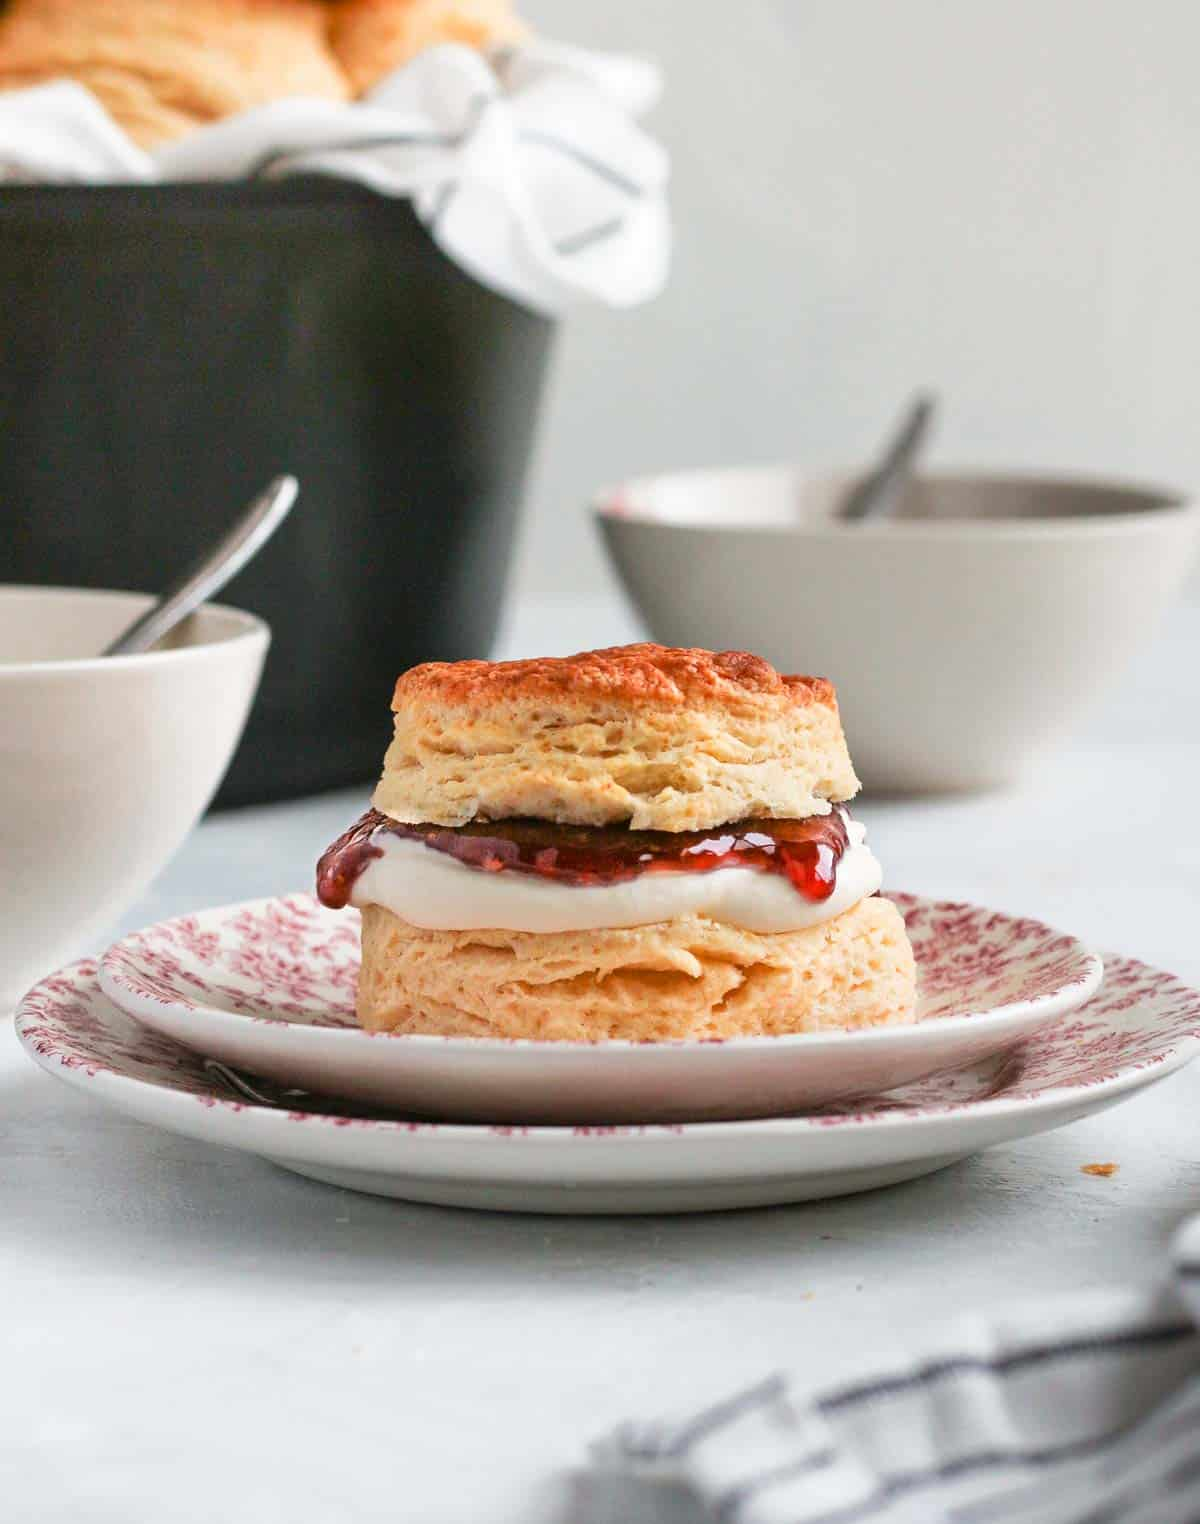 One scone filled with cream and jam on two pink plates.